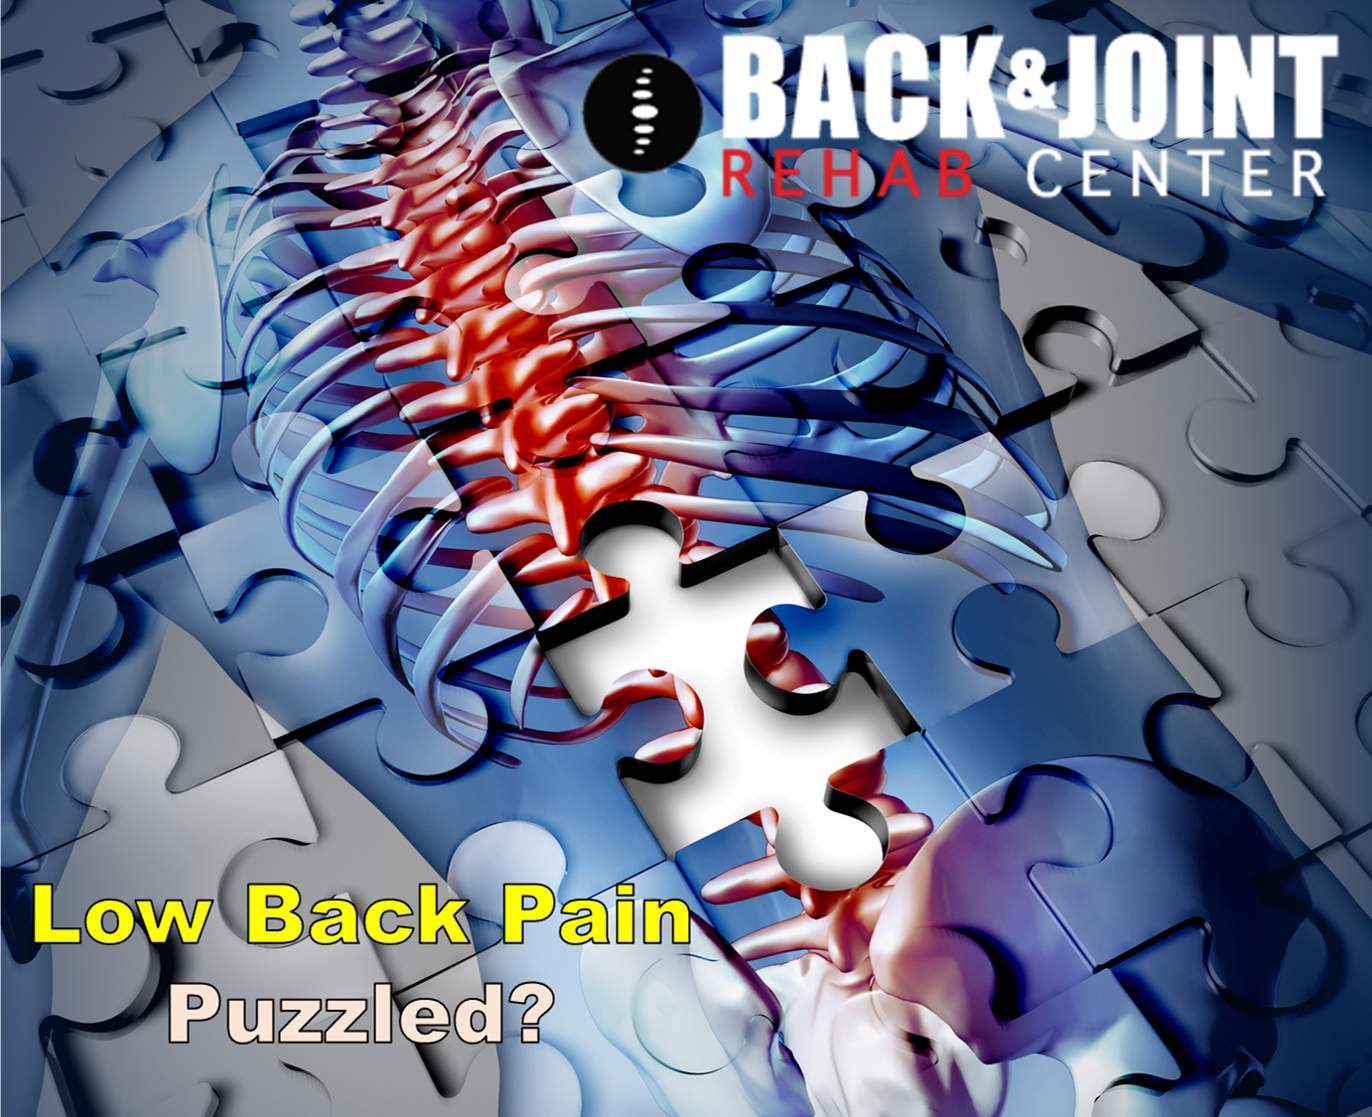 McKenzie-Method-Physical-Therapy-Chiropractor-Lower-Back-Pain-Sciatica-Herniated-Disc-Crown-Point-Merrillville-Lowell